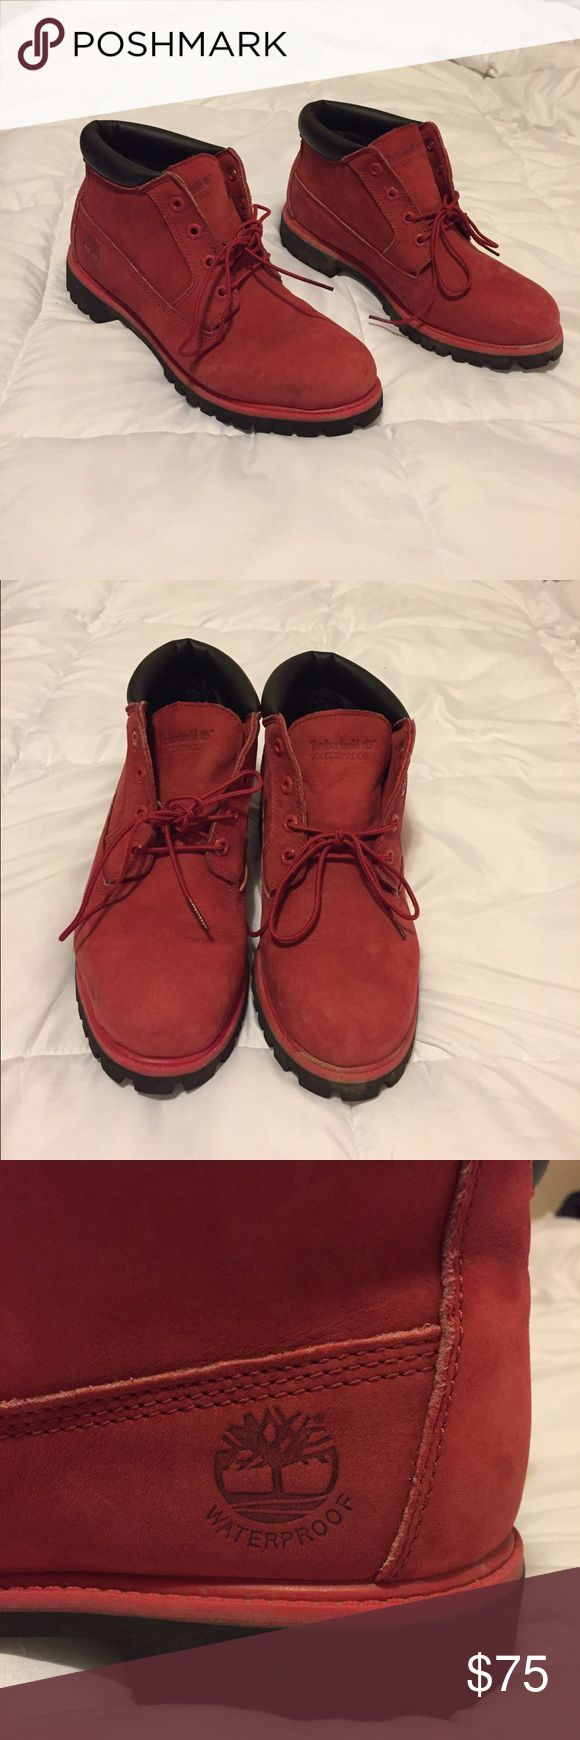 *FOR SALE!* Authentic Red Timberlands! Worn a handful of times but in VERY GOOD condition! These are genuine leather and suede! MAKE OFFERS!!  NO low ballers! Timberland Shoes Boots